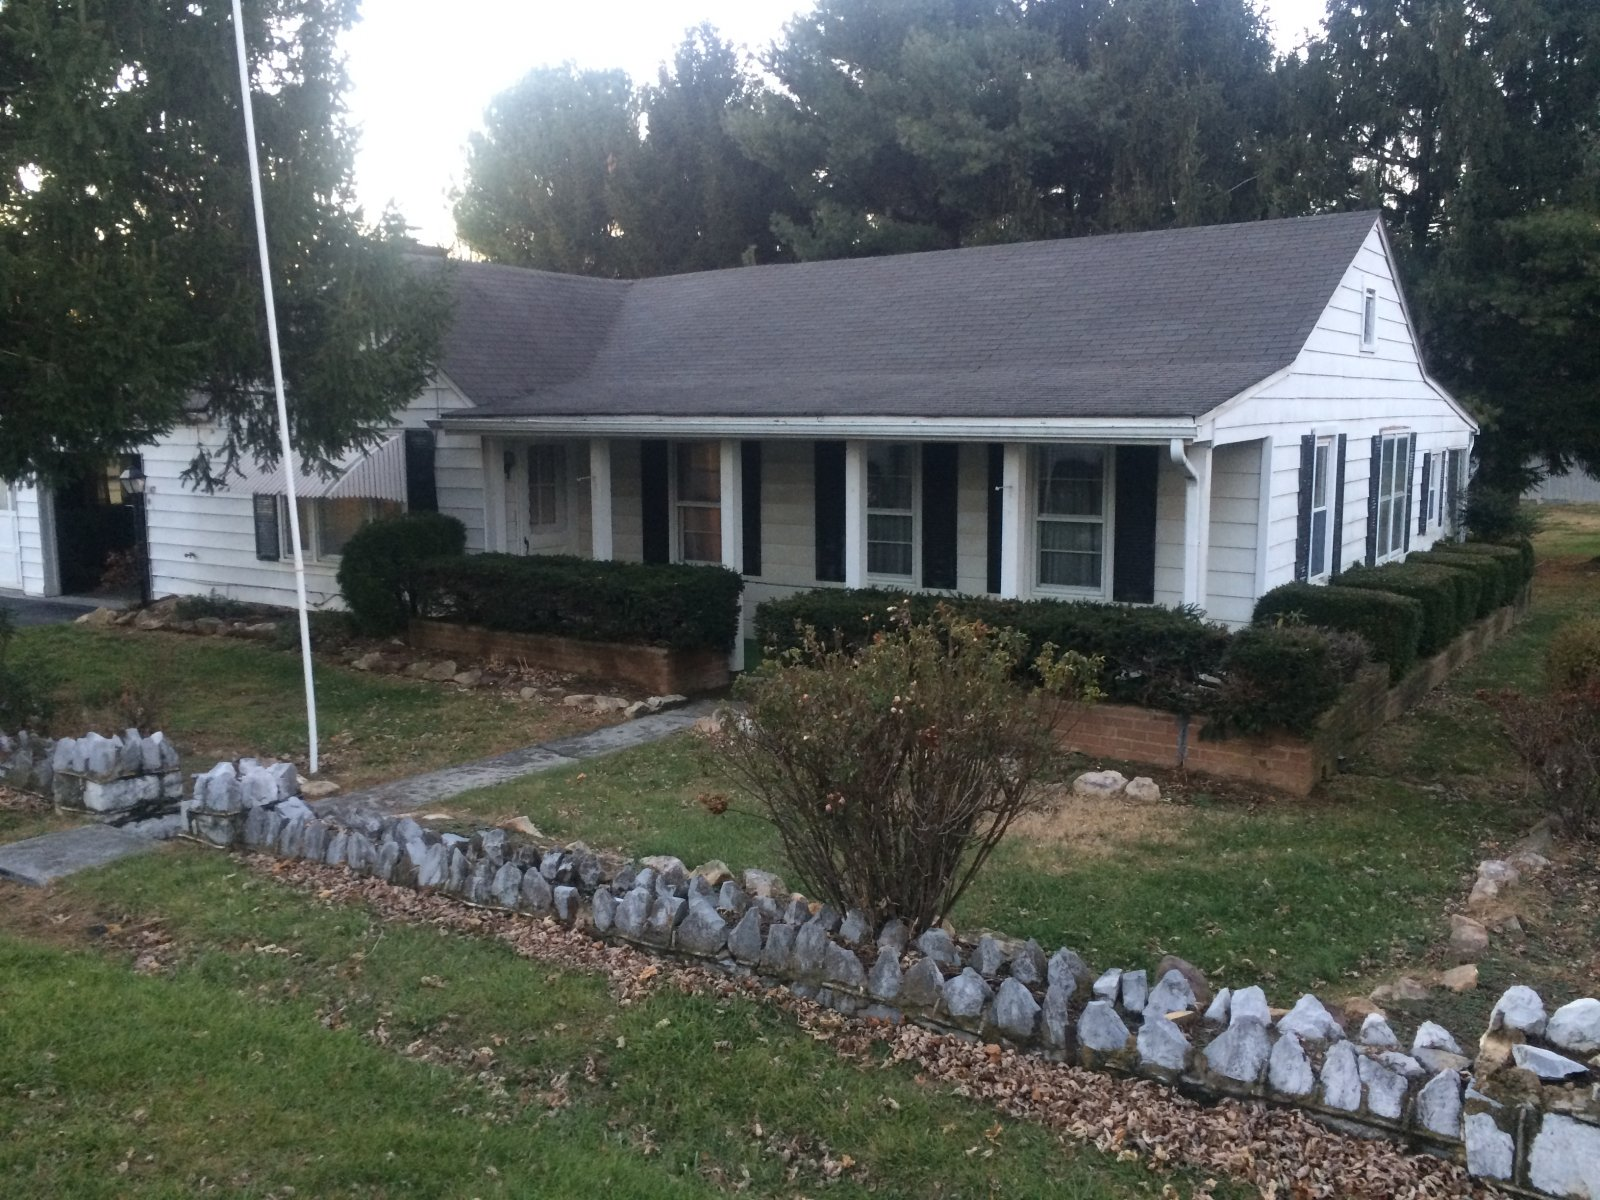 homes bought in Virgina